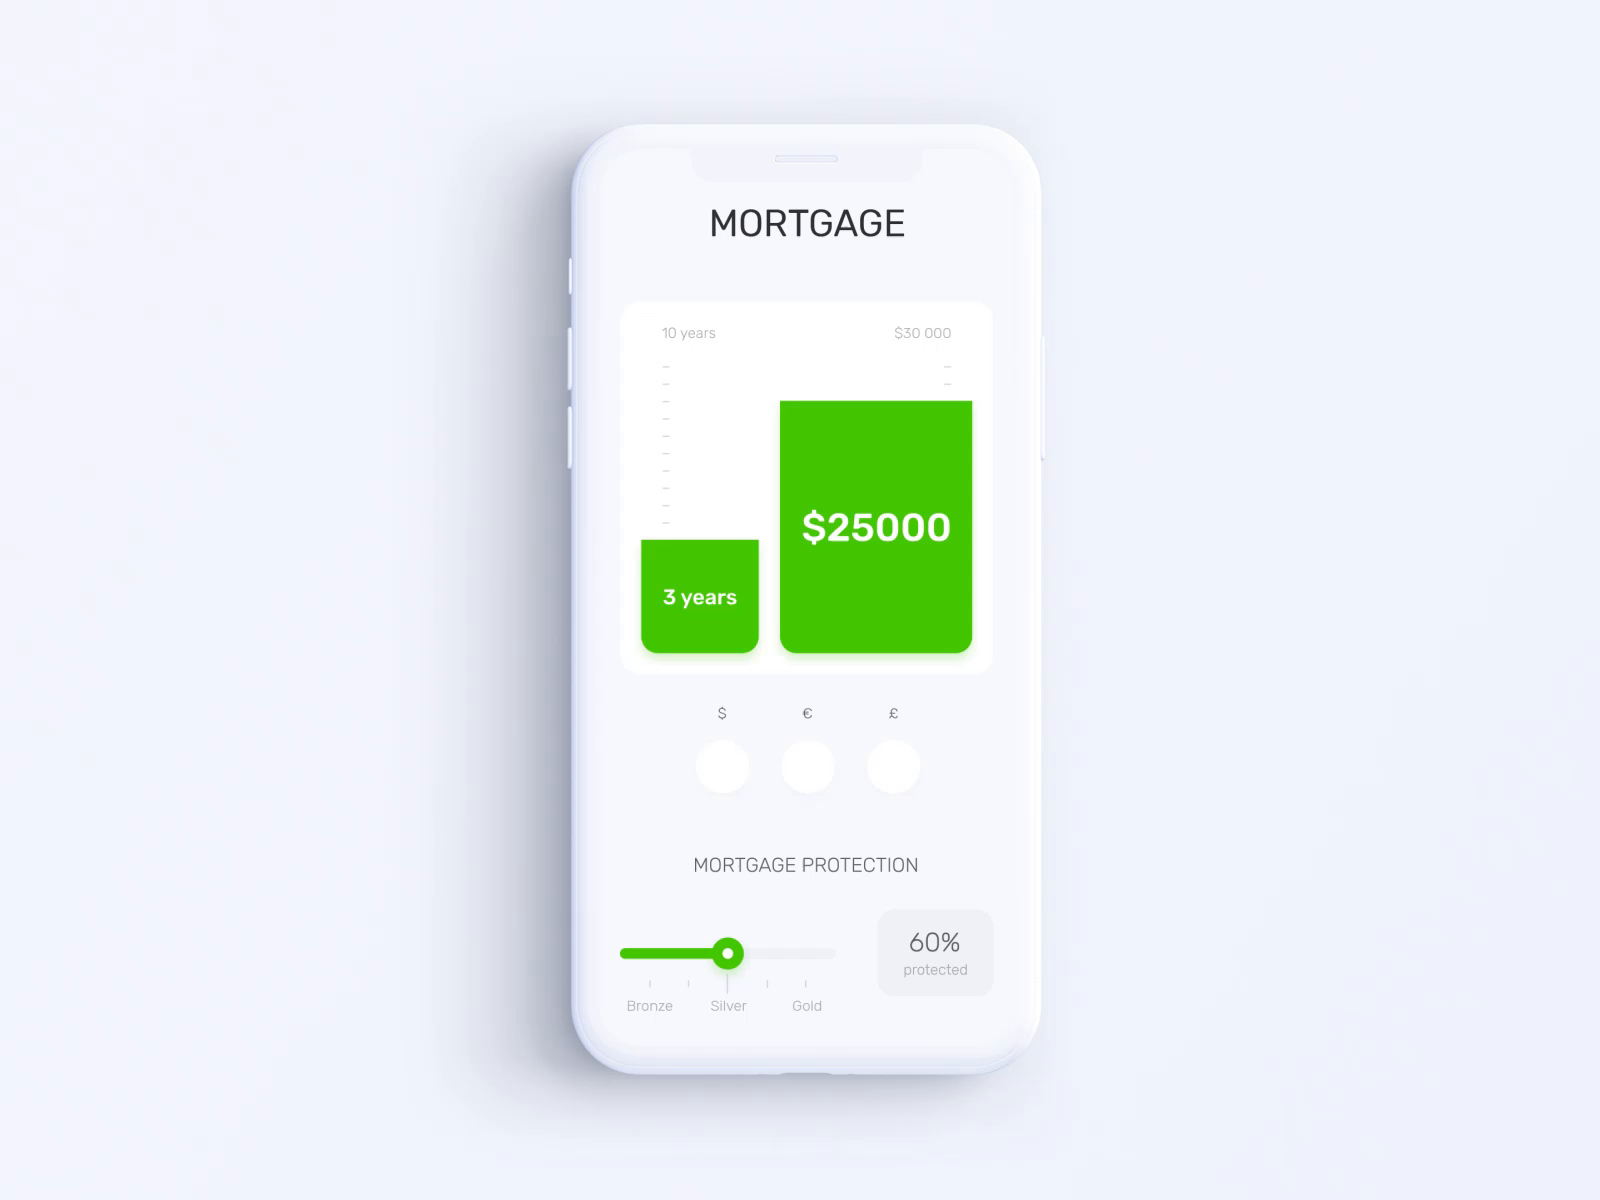 Privat24 banking app 6   mortgage calculator